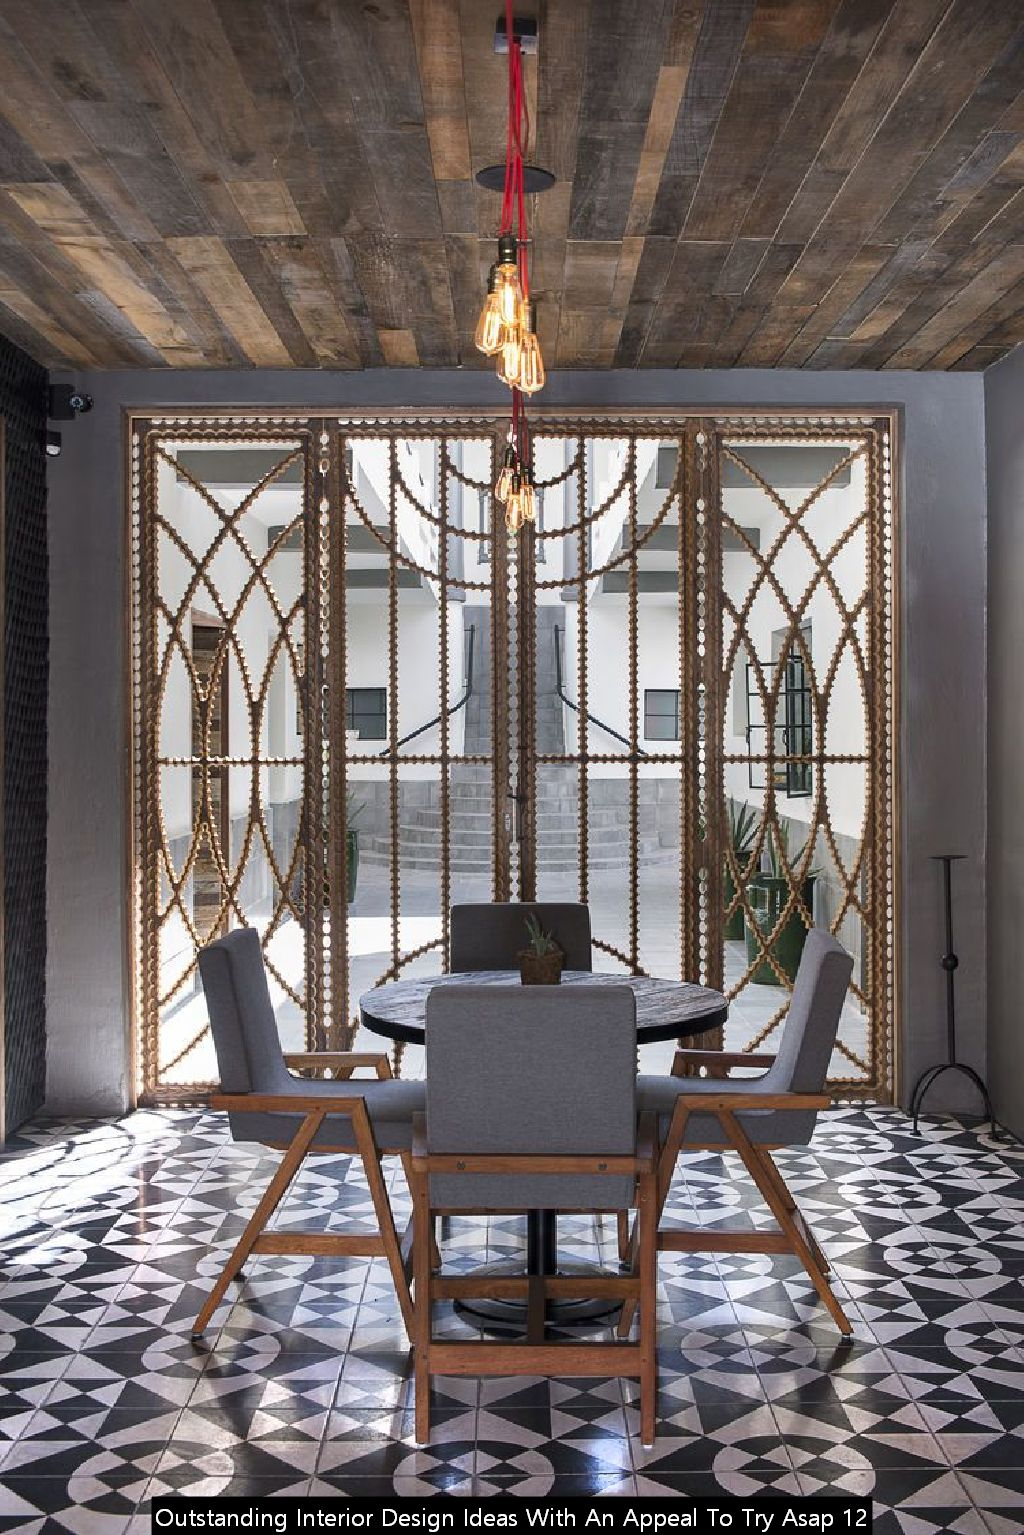 Outstanding Interior Design Ideas With An Appeal To Try Asap 12